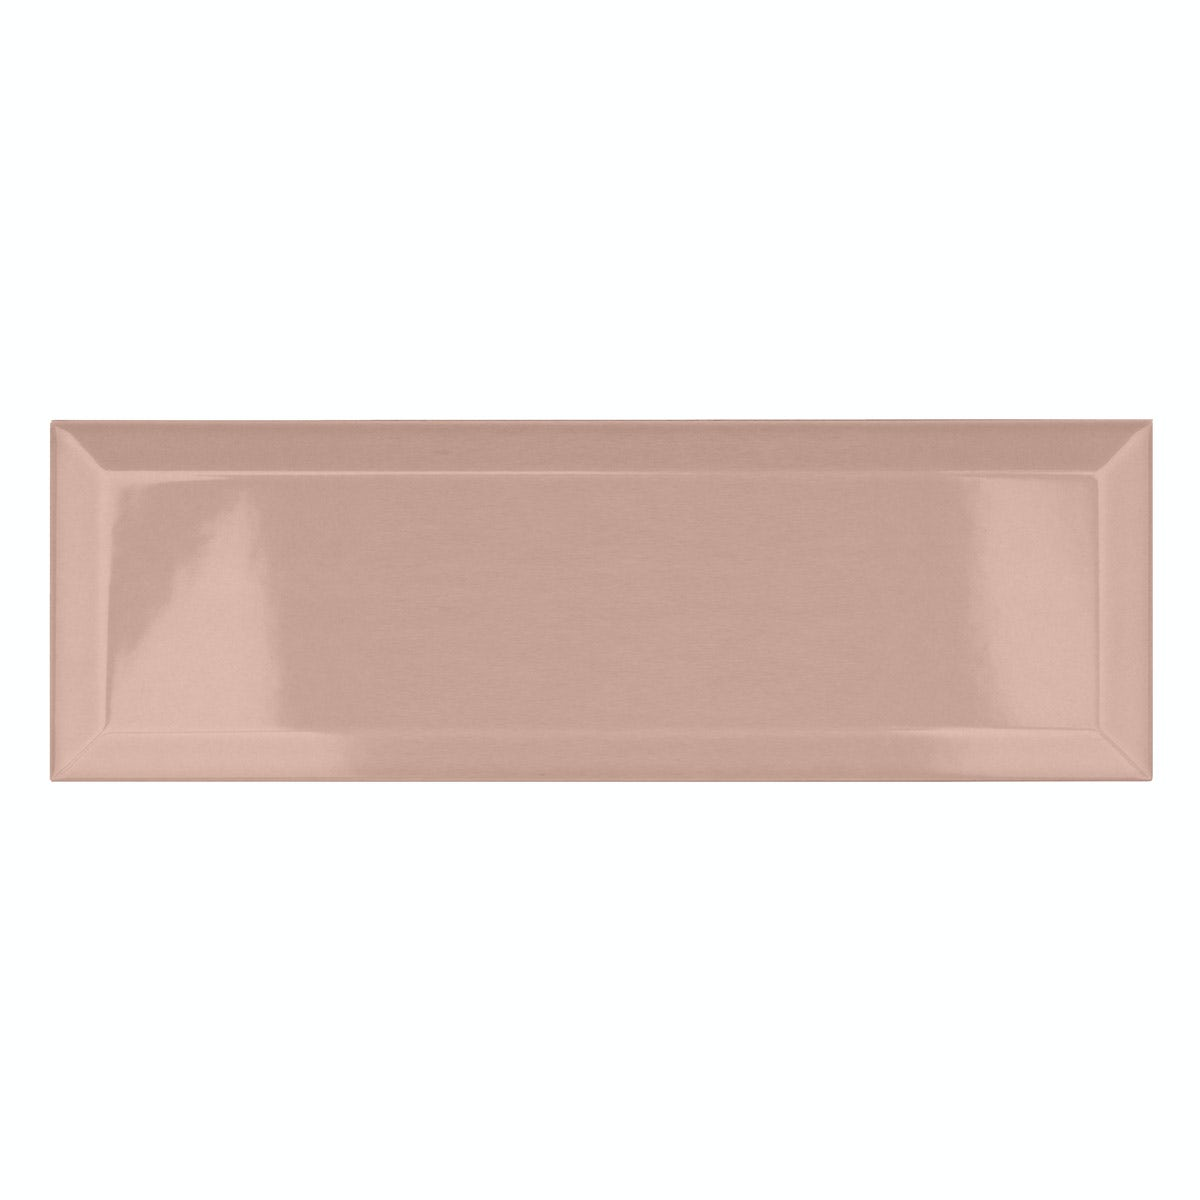 Maxi Metro Blush Pink Bevelled Gloss Wall Tile 100mm X